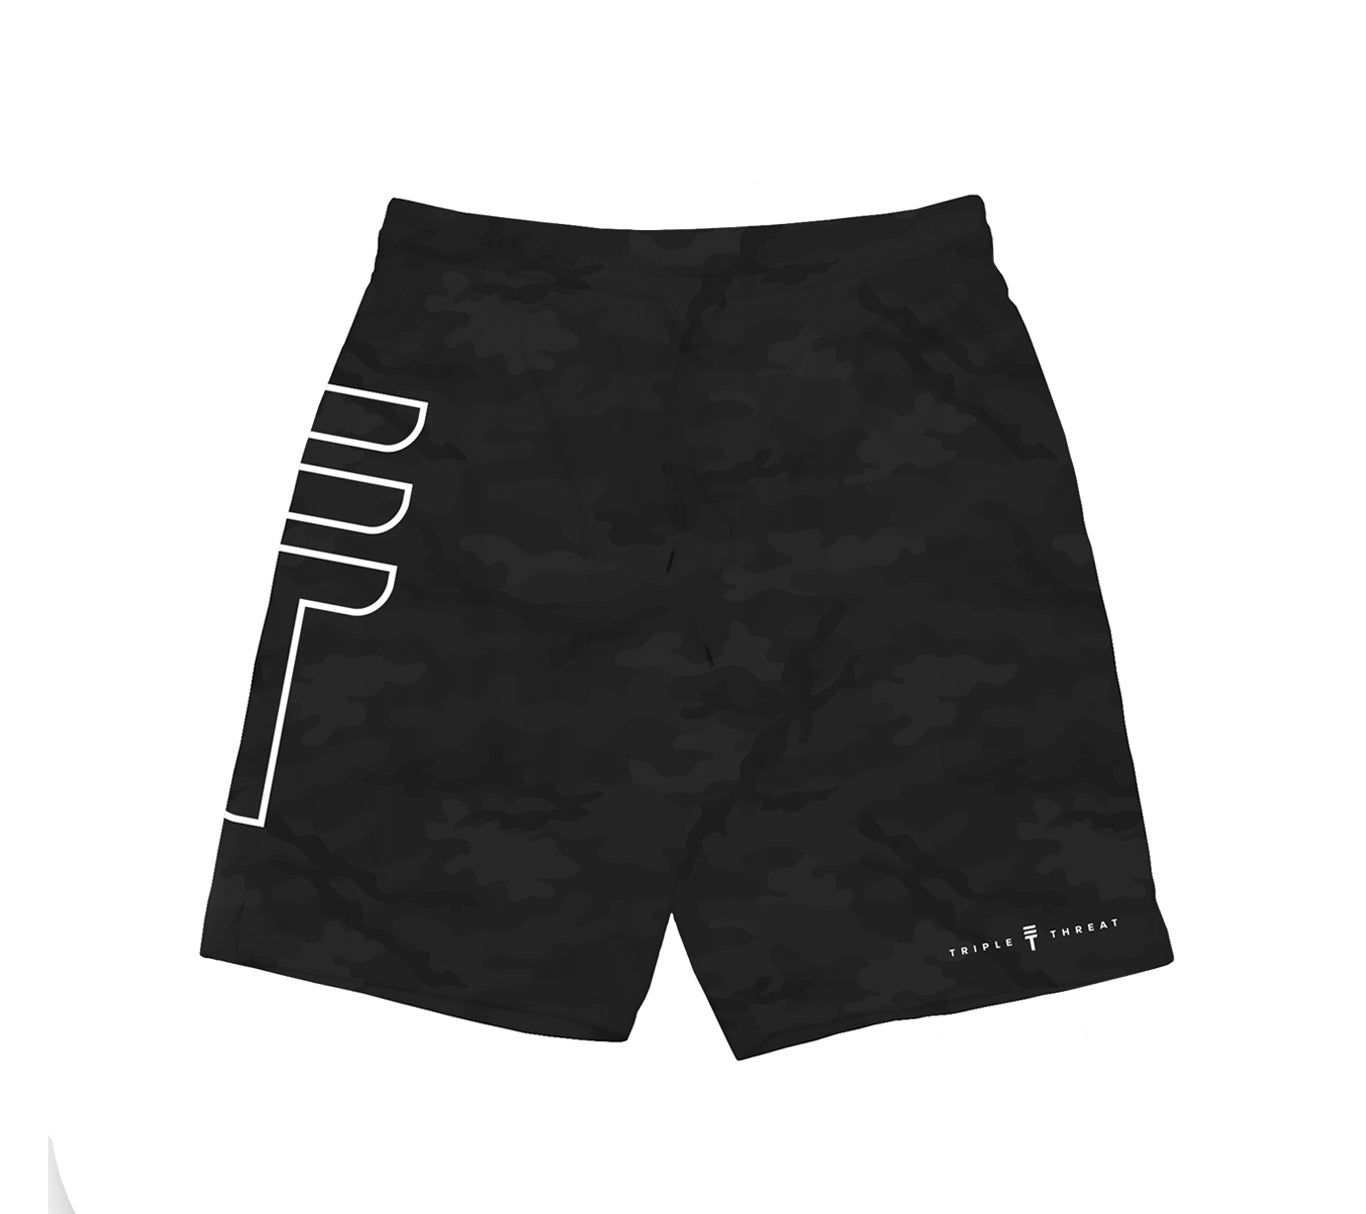 TRIPLE THREAT BIG LOGO SHORTS - BLACK